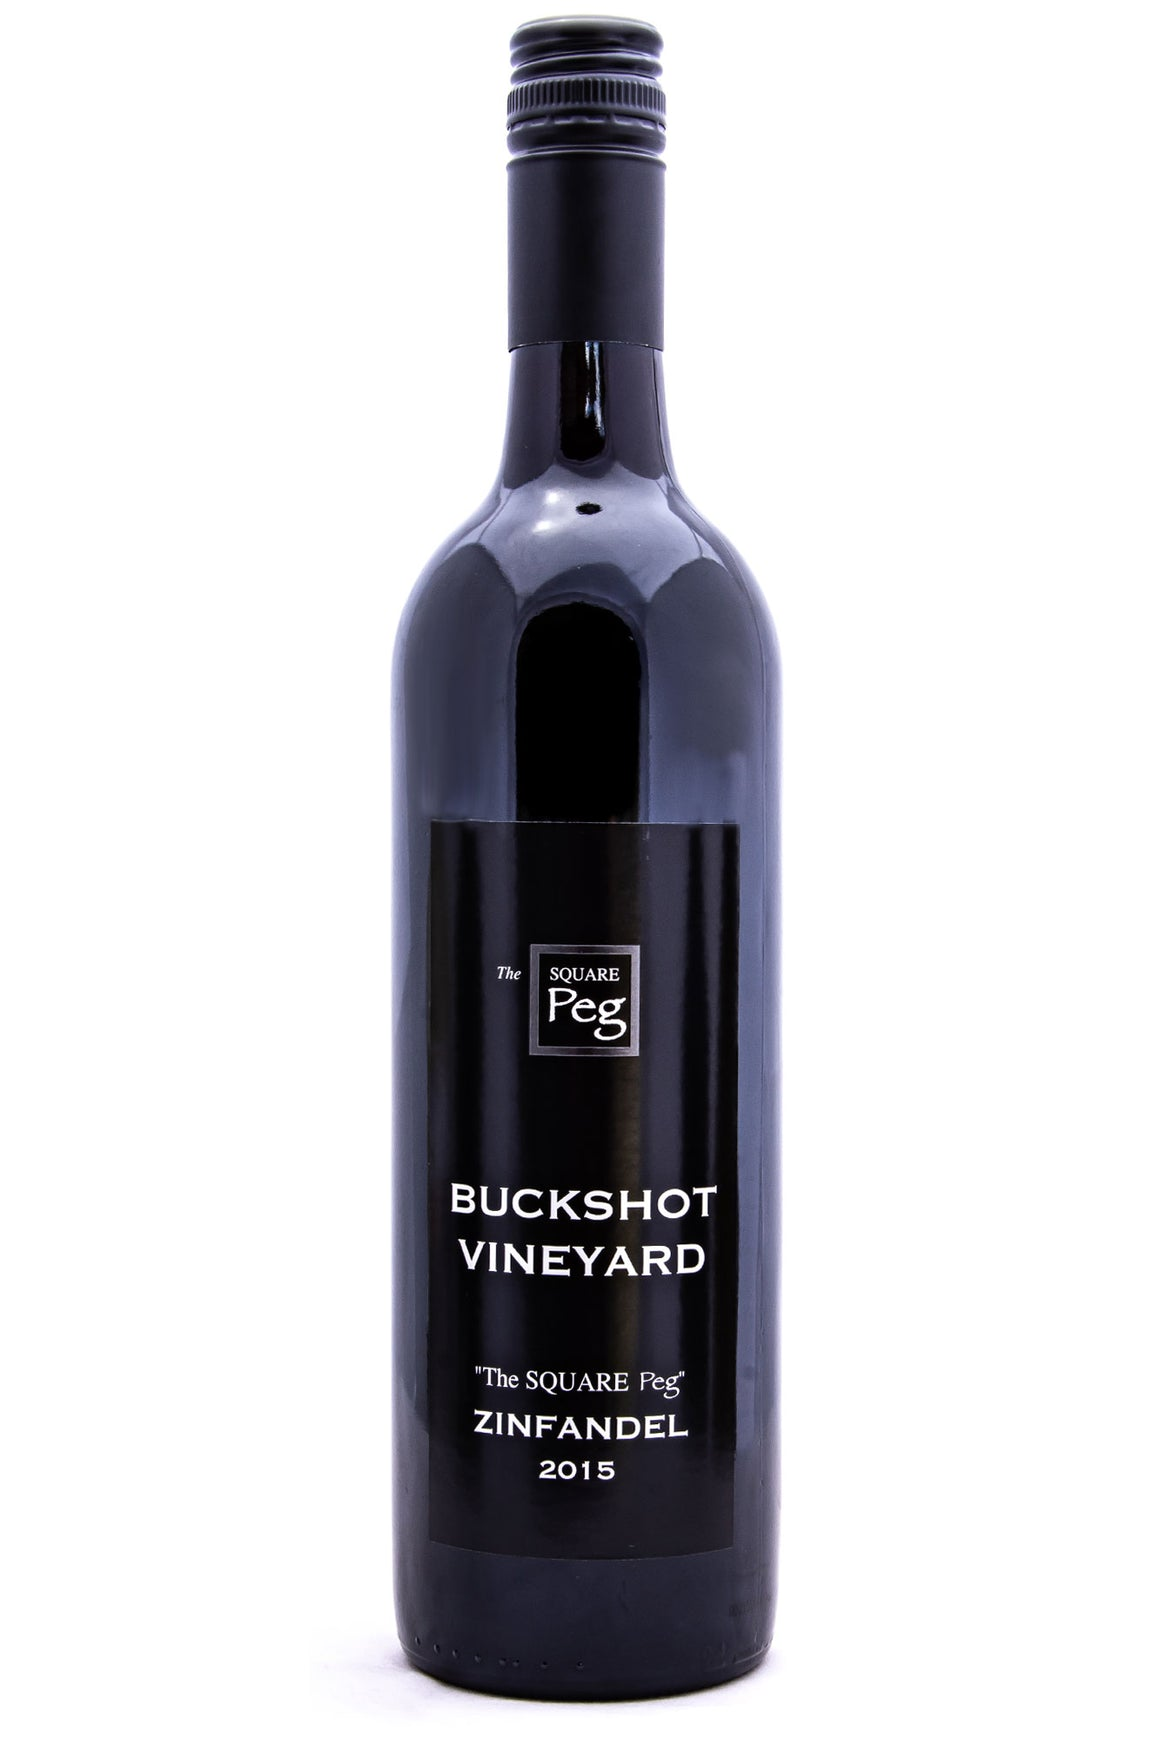 Buckshot Vineyard The Square Peg Zinfandel 2017